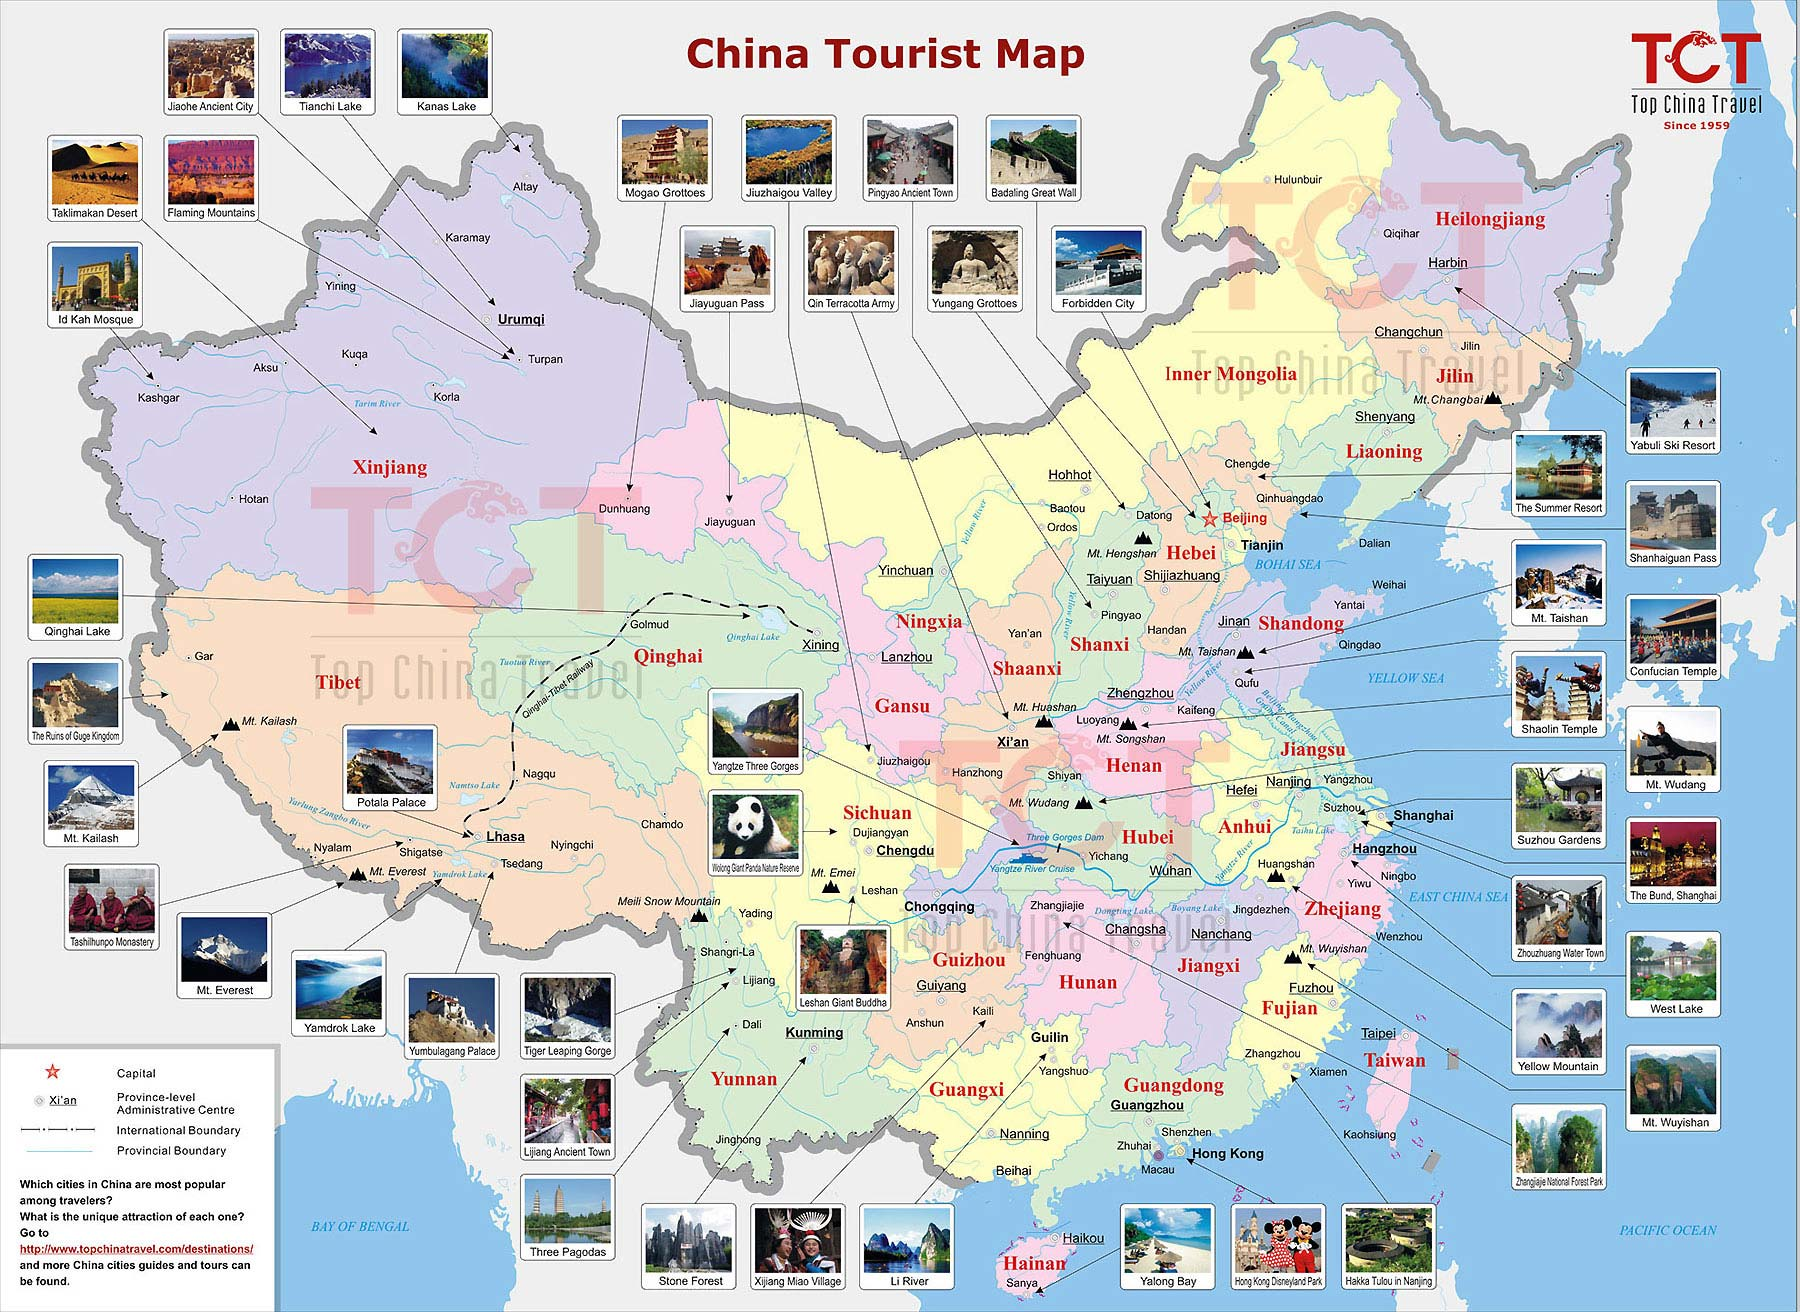 China Tourist Map, Tourist Map of China, China Travel Map on